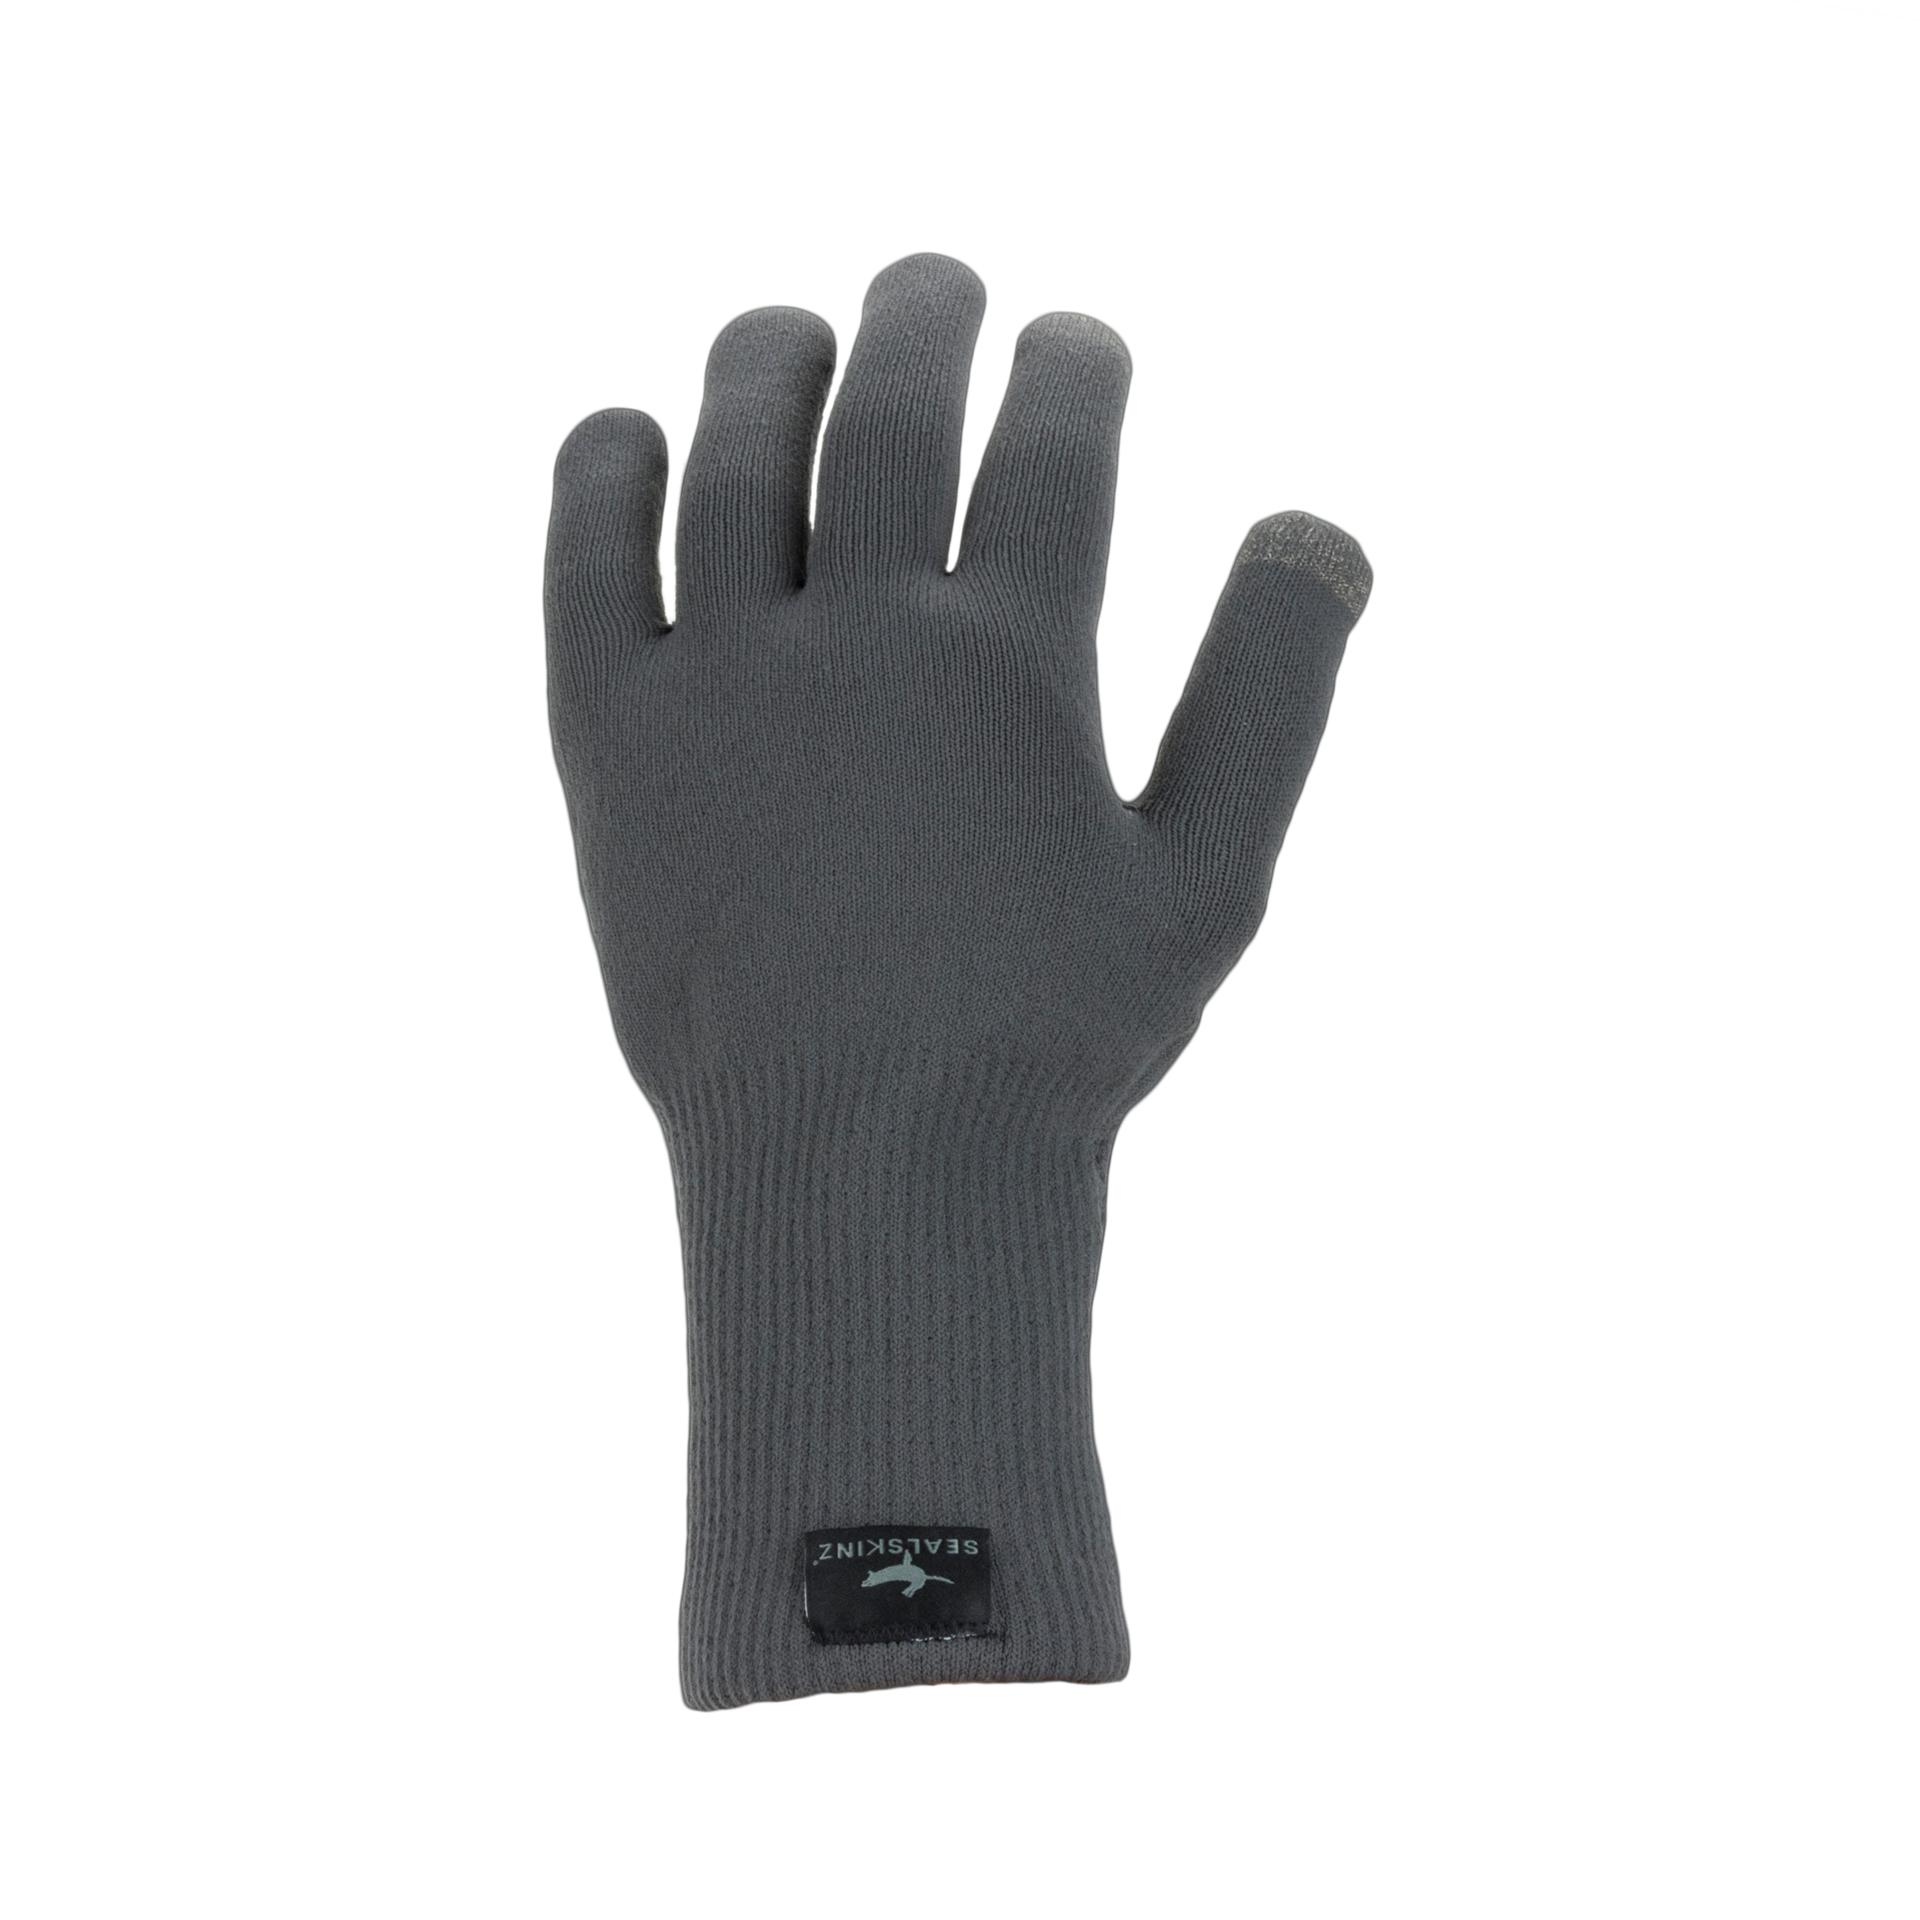 Afbeelding Sealskinz Fietshandschoenen waterdicht voor Heren Grijs  / Waterproof All Weather Ultra Grip Knitted Glove Grey